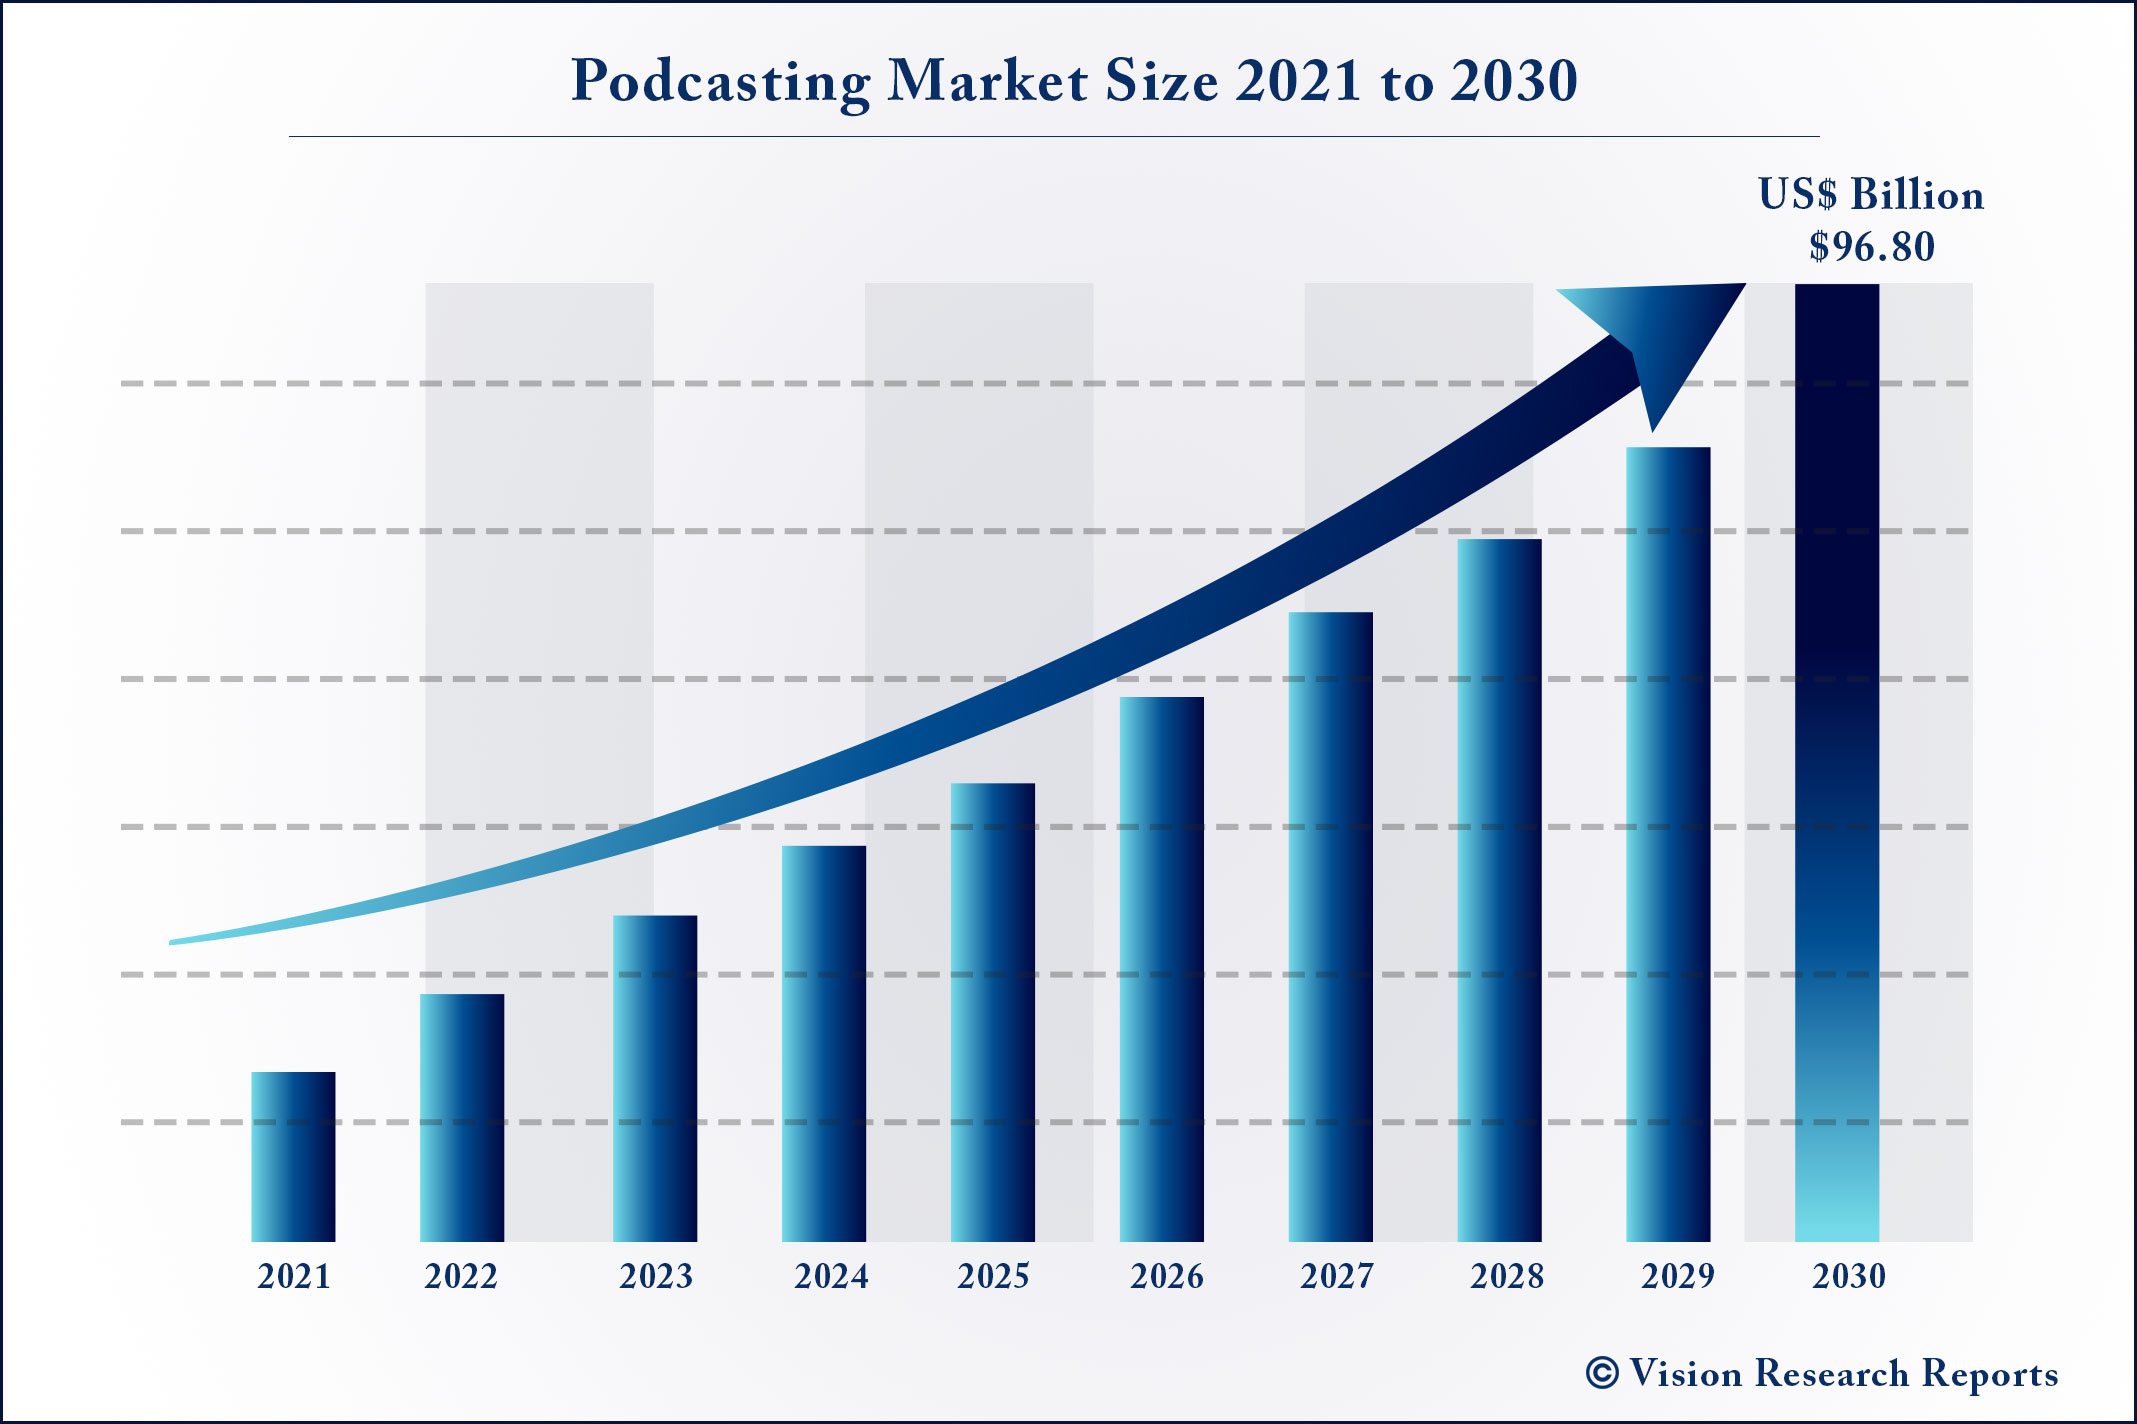 Podcasting Market Size 2021 to 2030